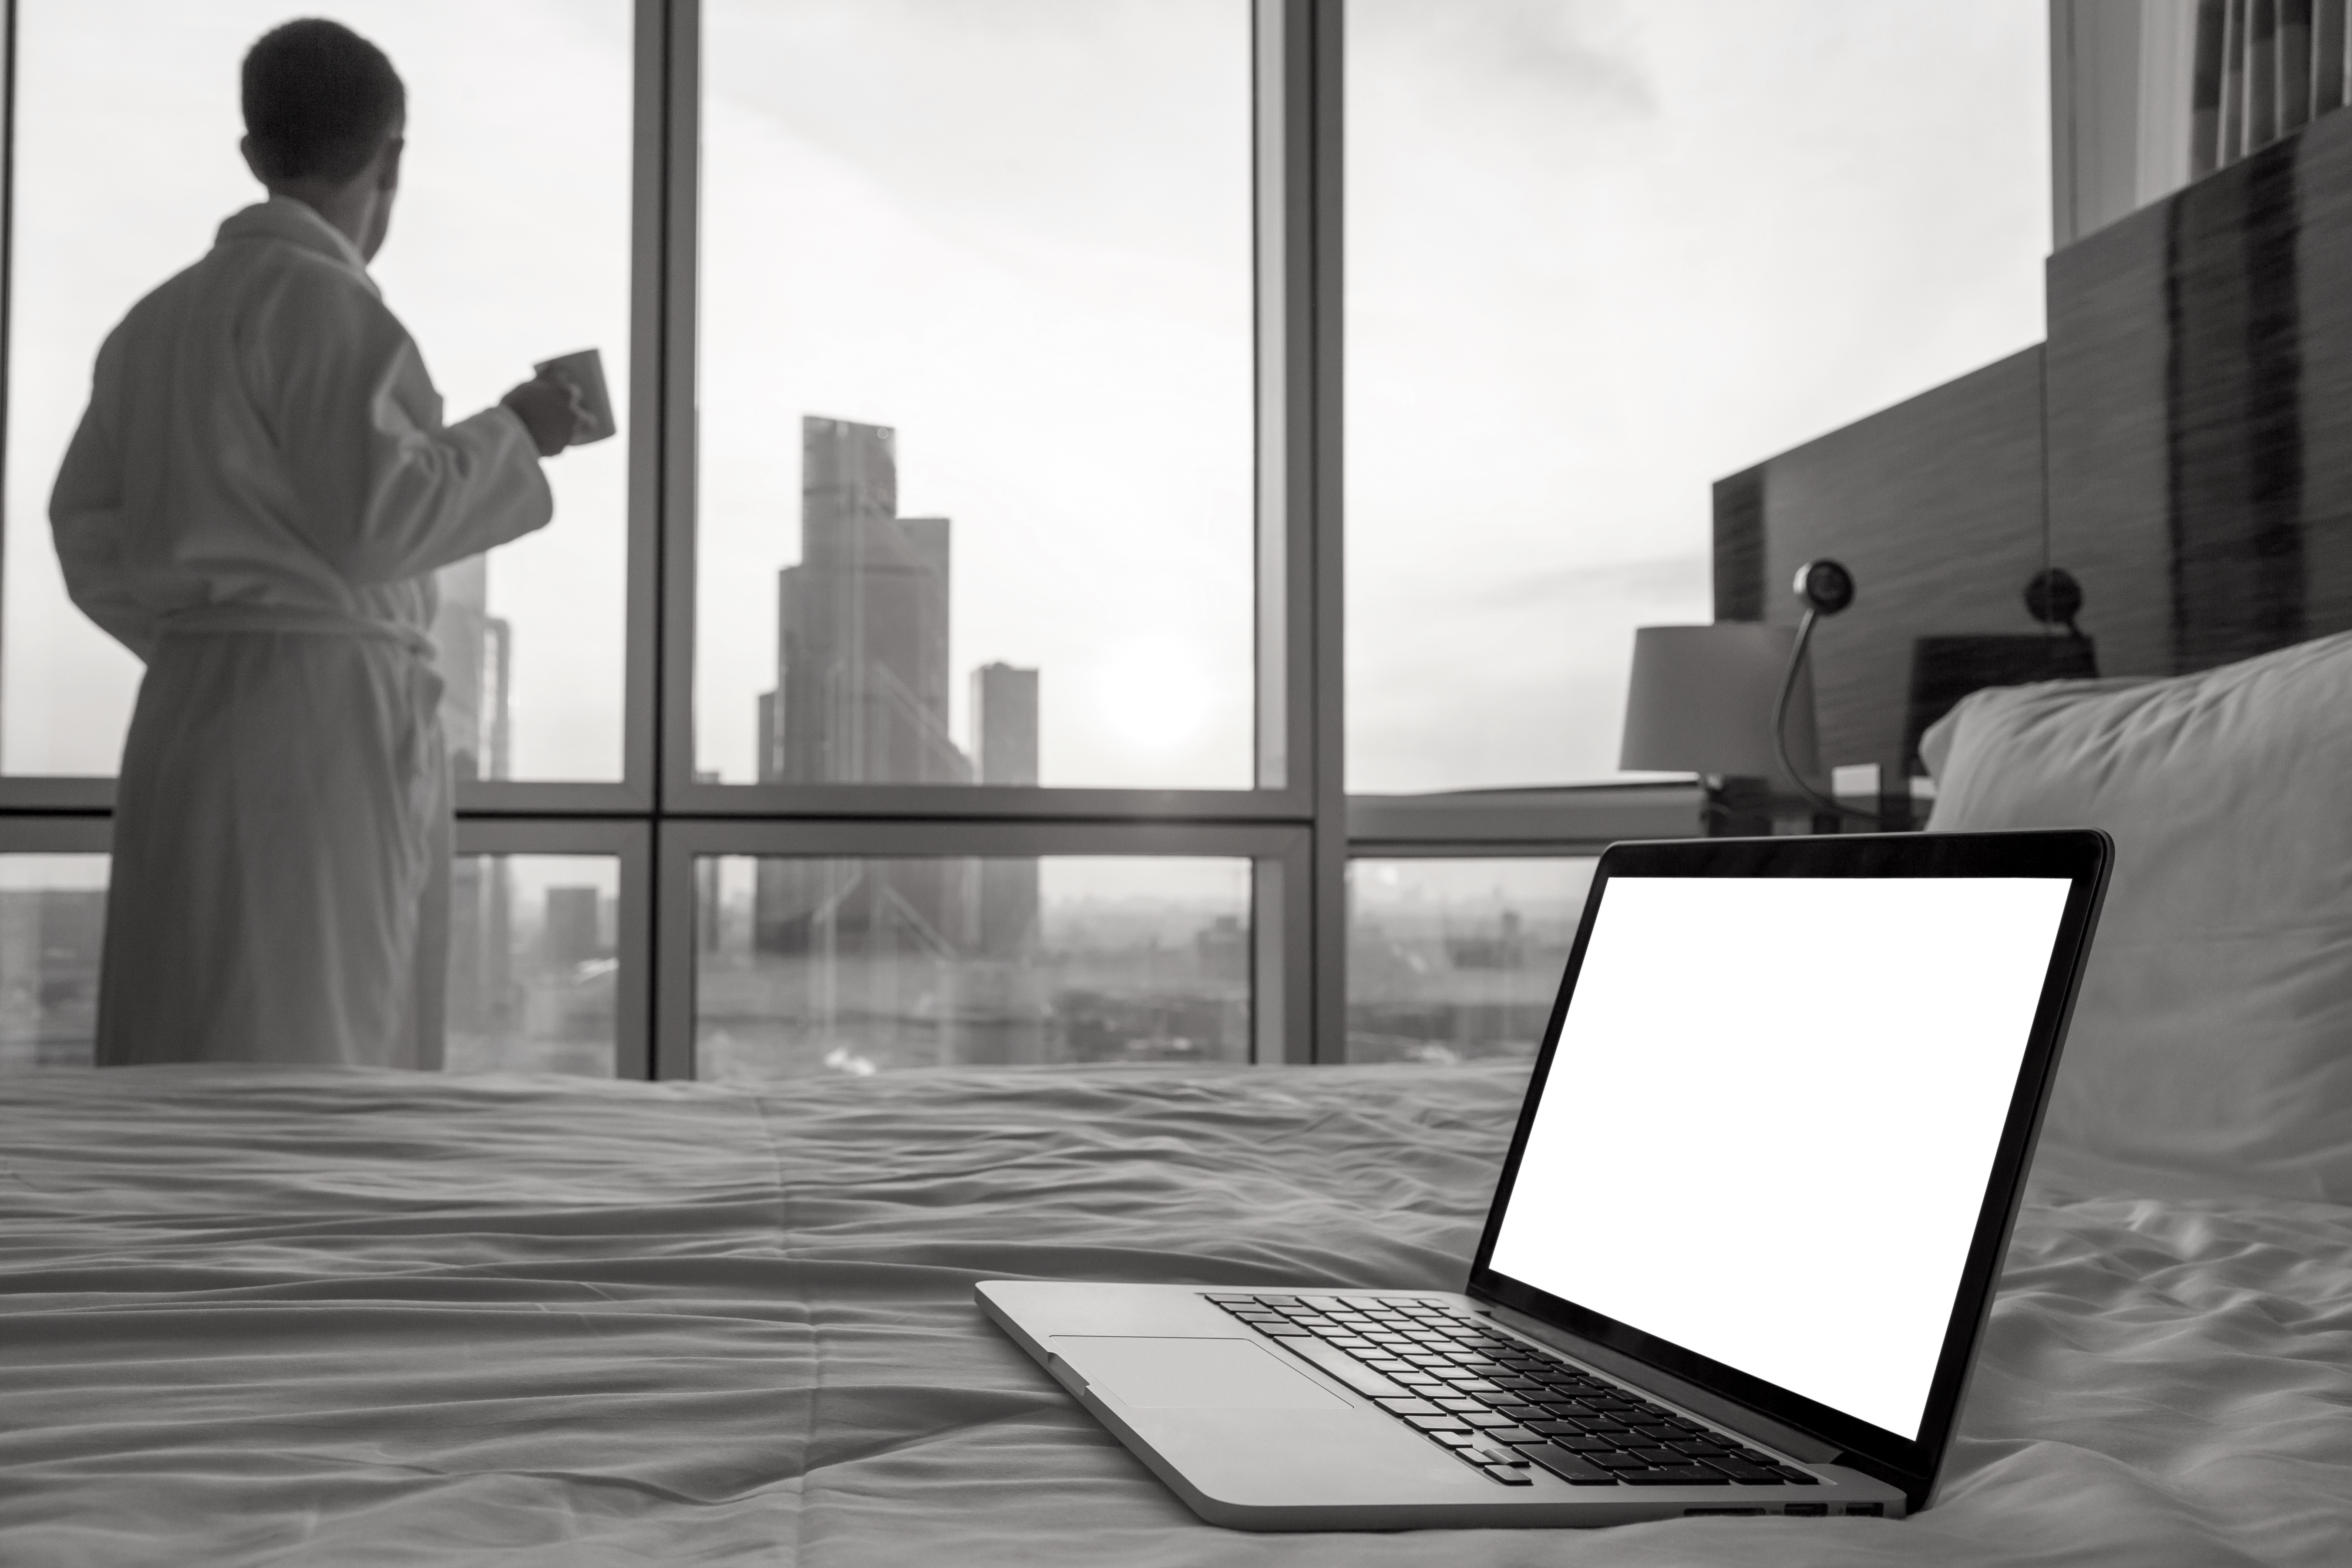 Focus On Laptop Computer With Copy Space Blank Screen On The Bed. Young Businessman In White Bath Robe Standing At Window With Cup Of Coffee Looking At Sunset City View